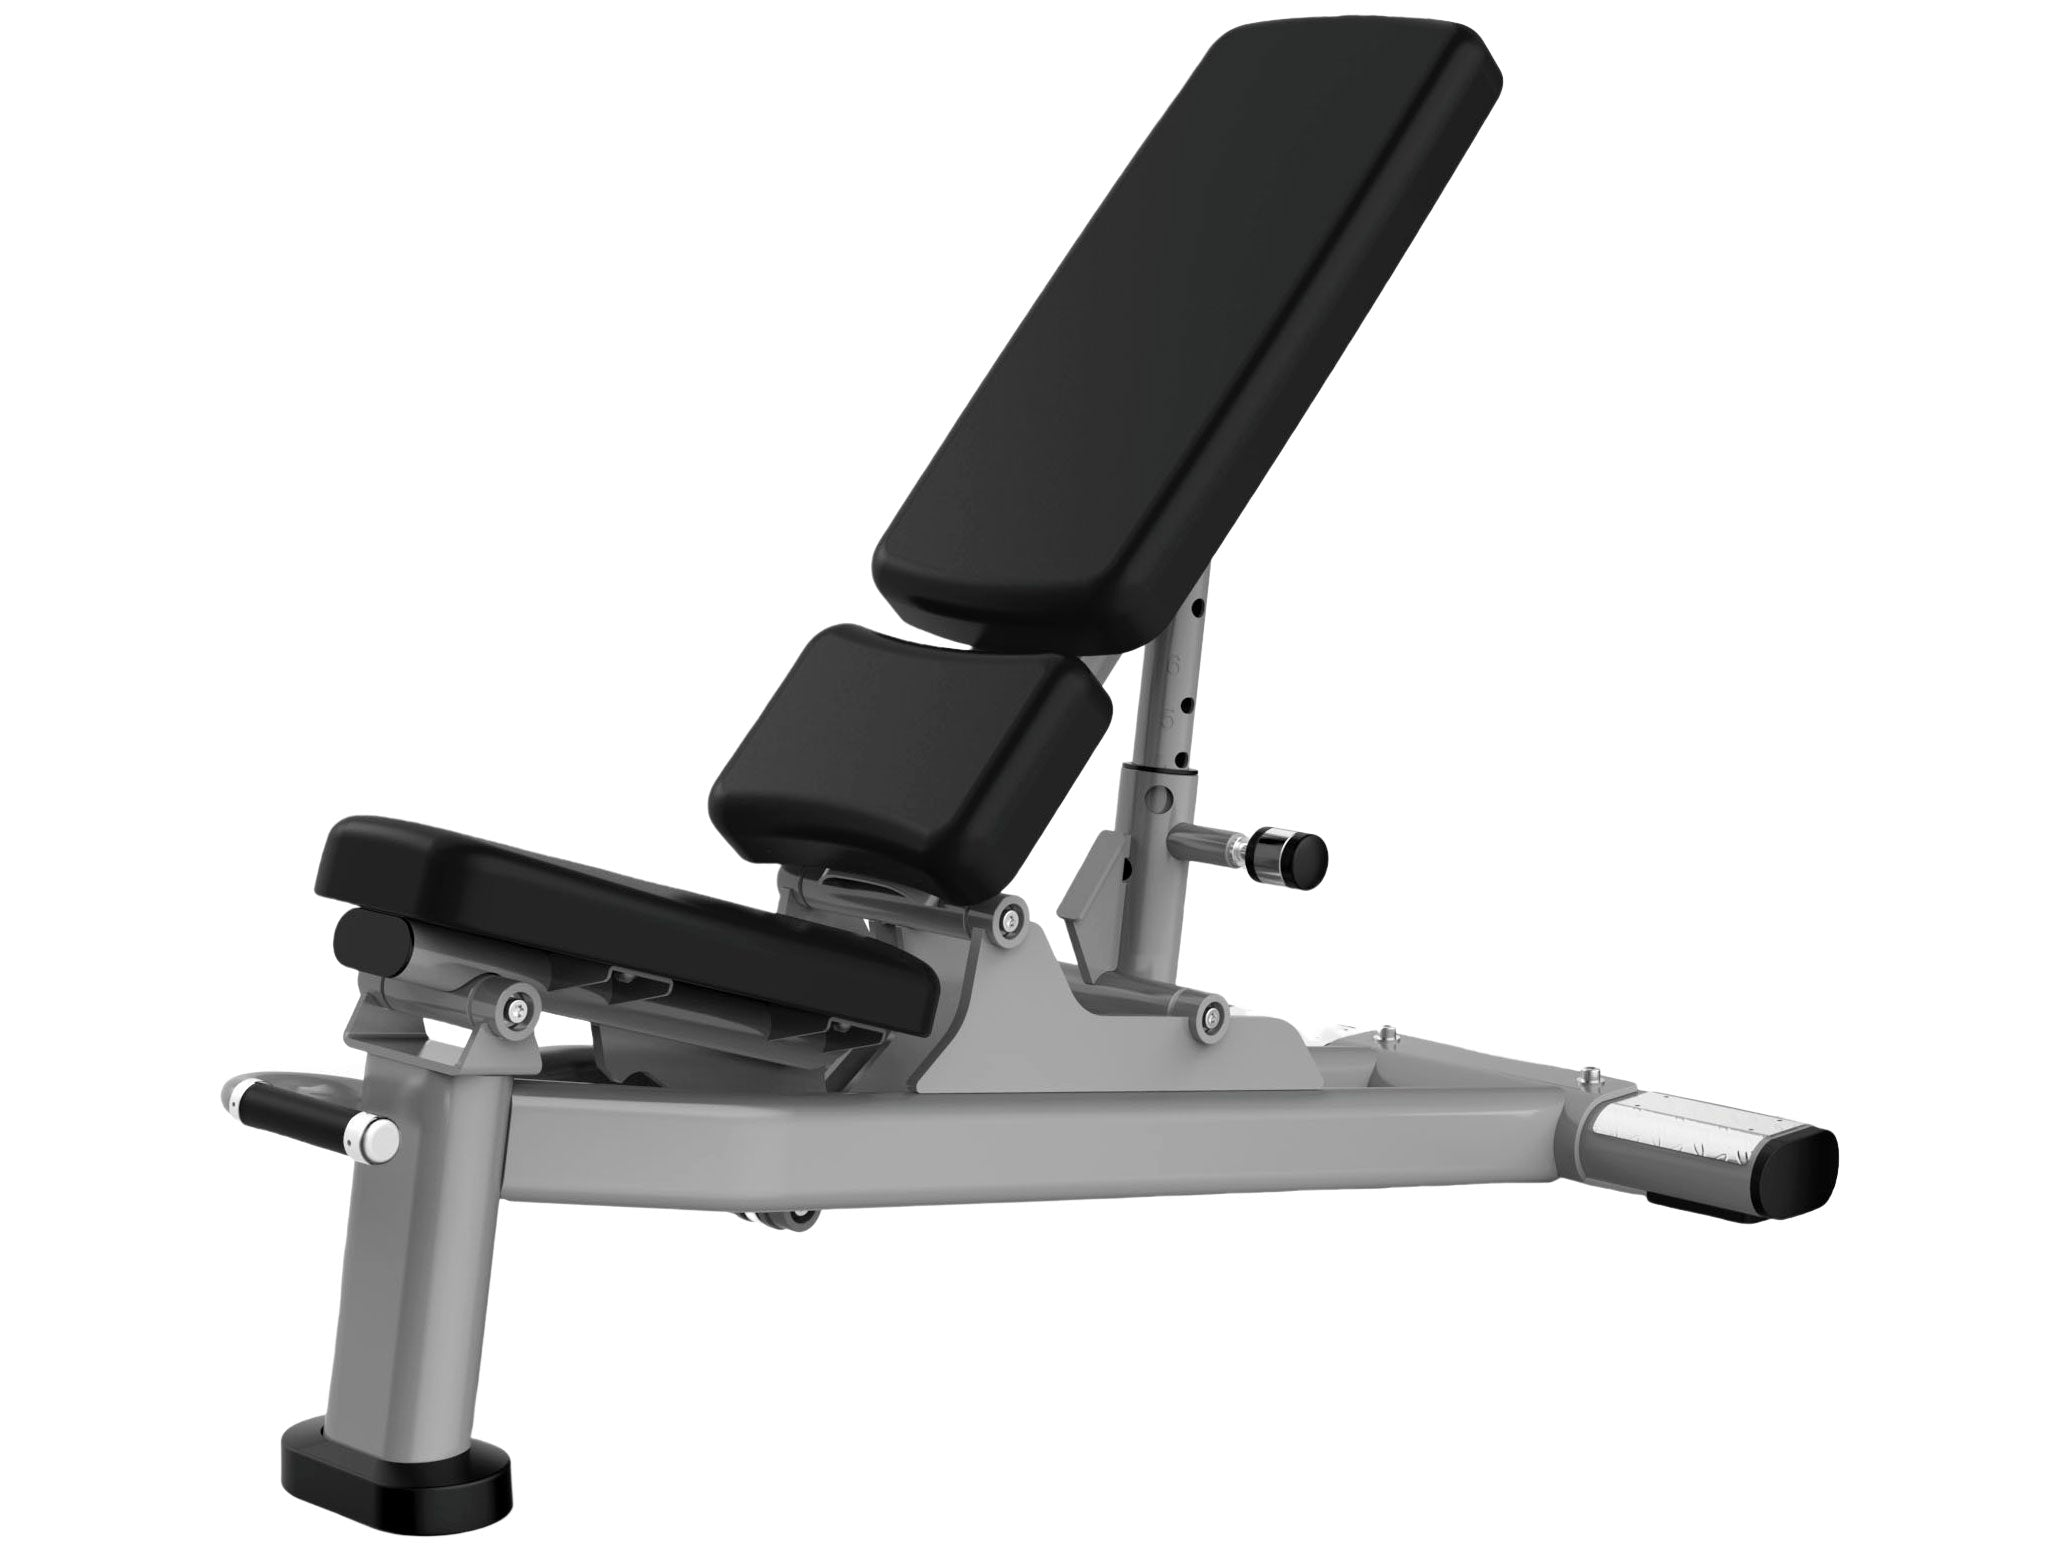 Factory photo of a New Sportgear Multi Adjustable Bench